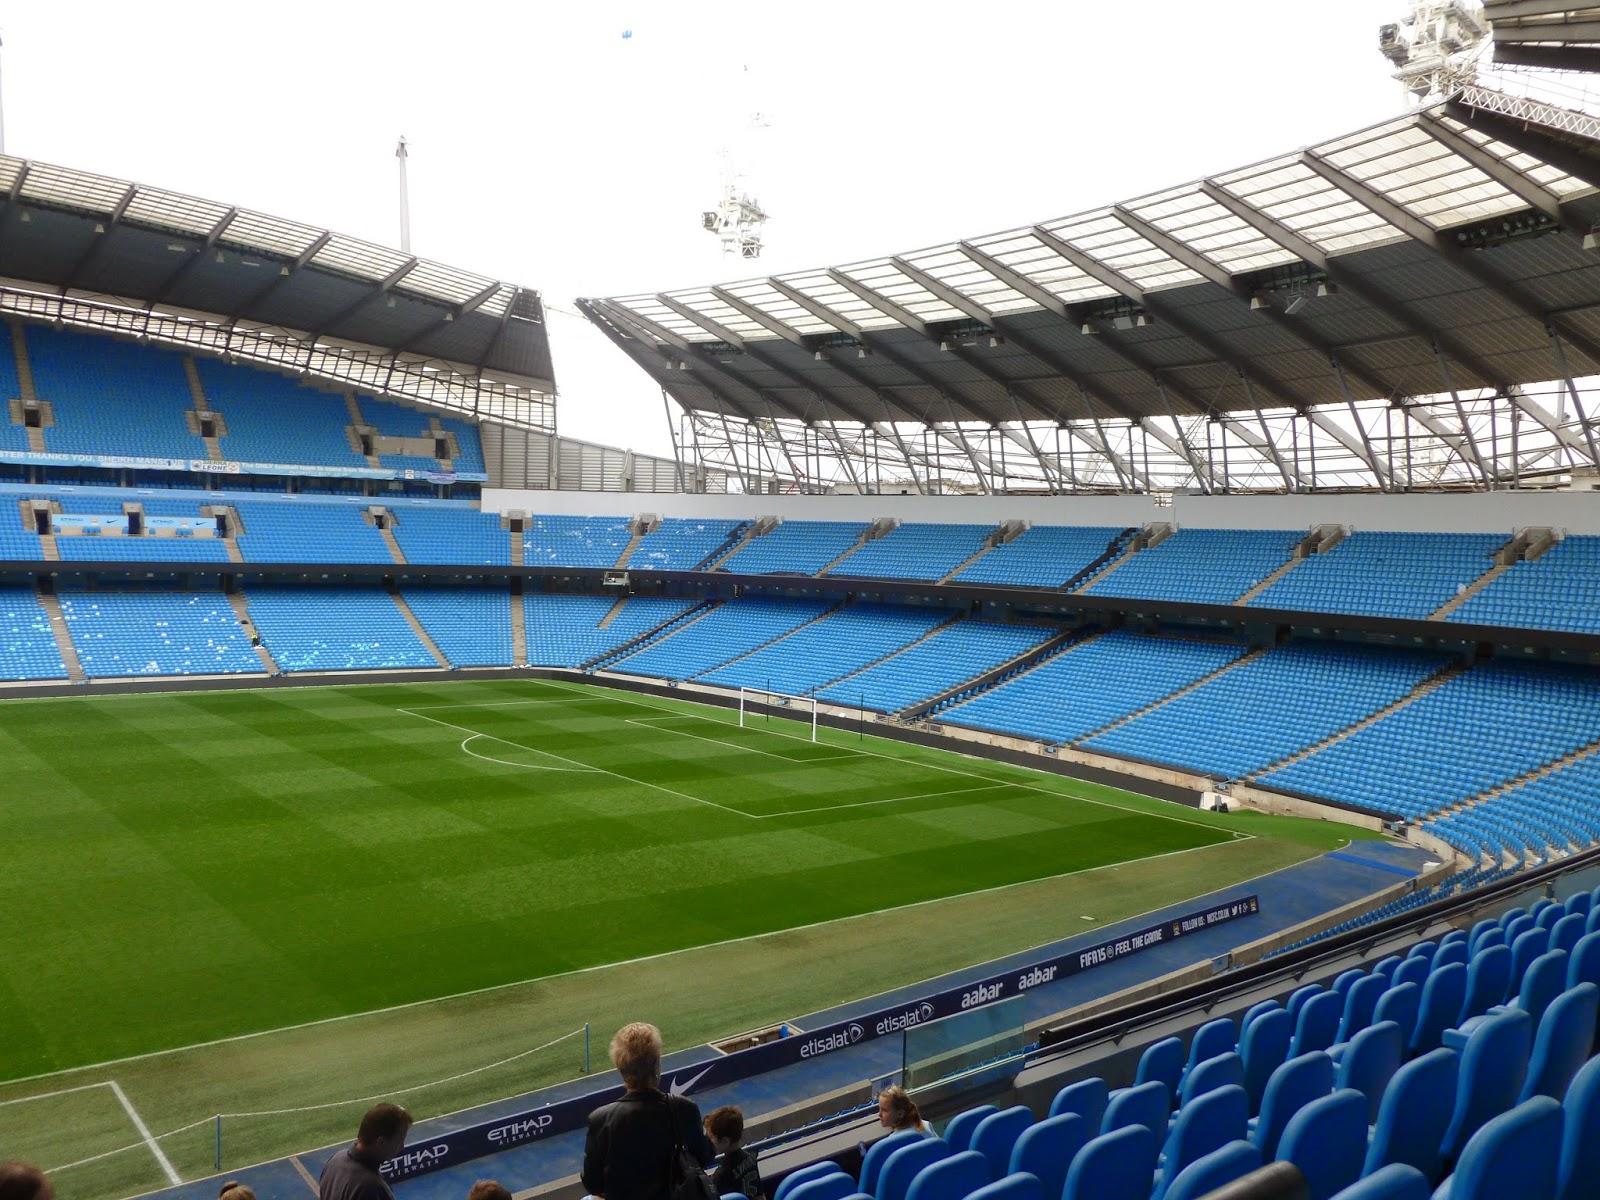 etihad stadium - photo #24